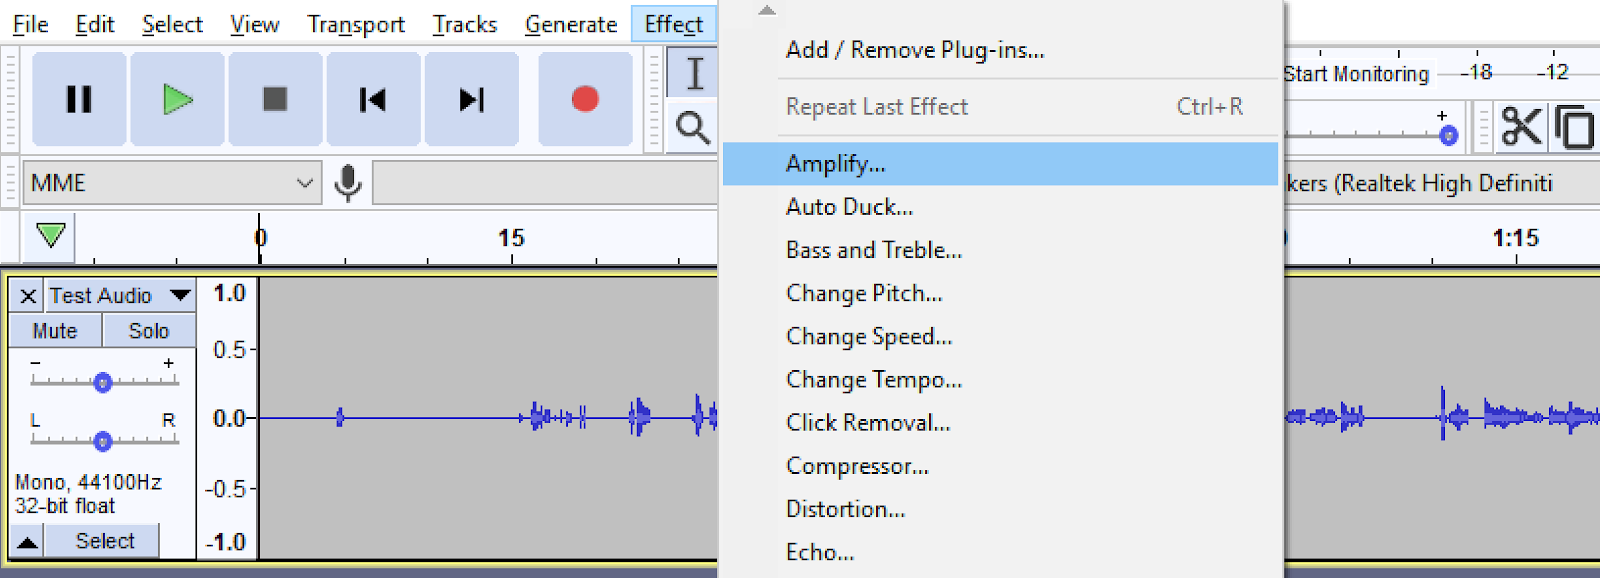 Effect menu in Audacity